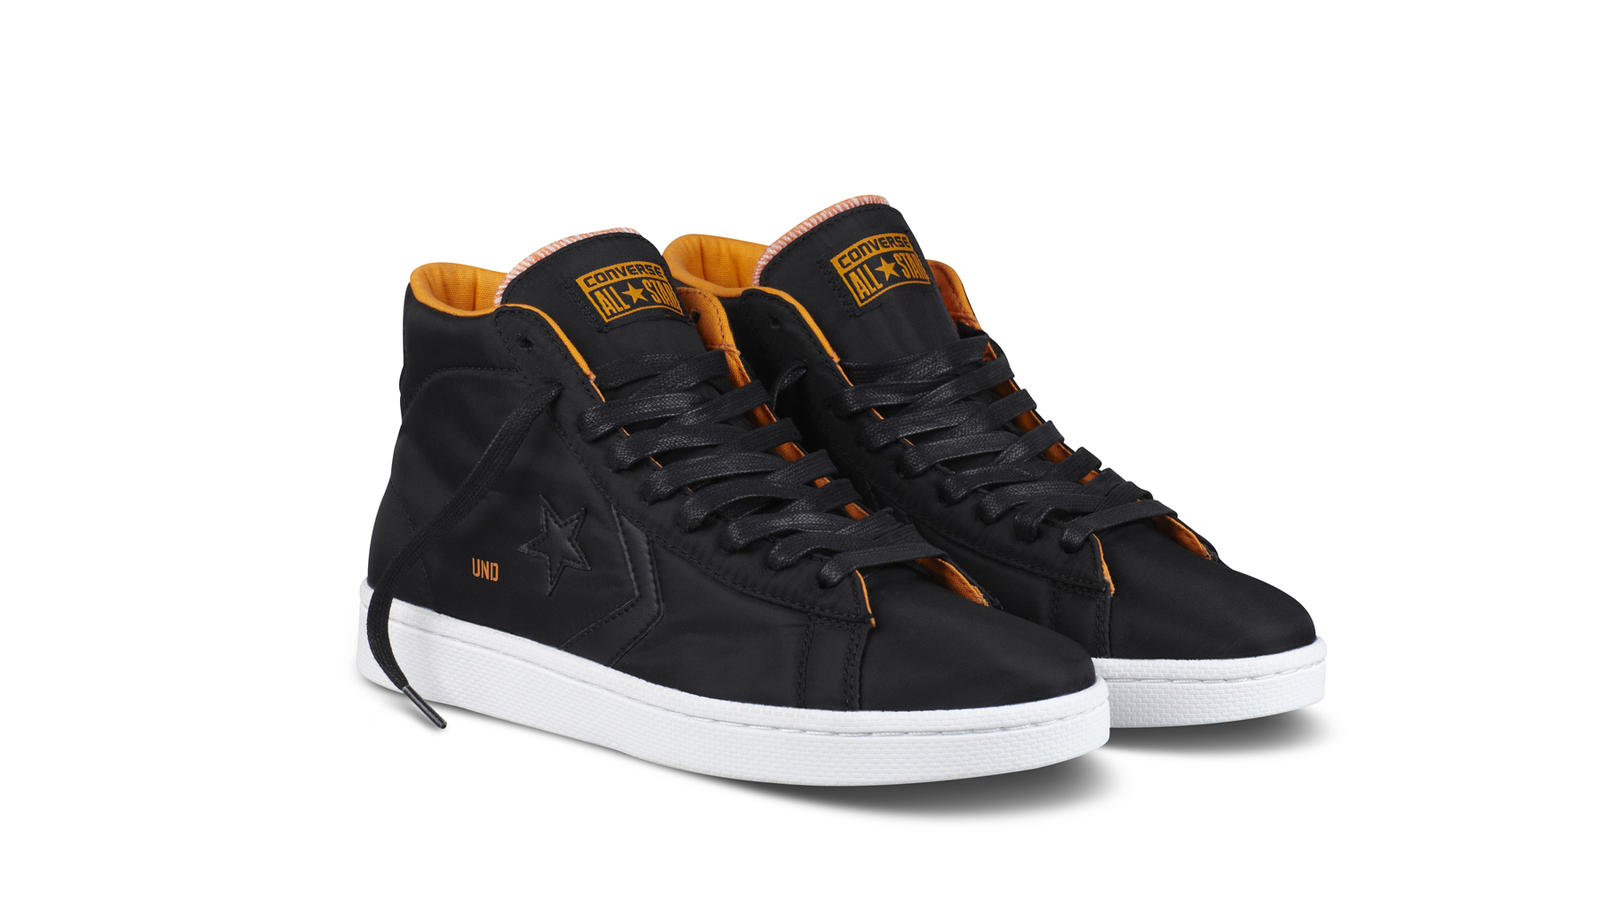 Religioso Cuaderno Marcha atrás  Converse and Undefeated launch collection to be sold at Foot Locker - Nike  News